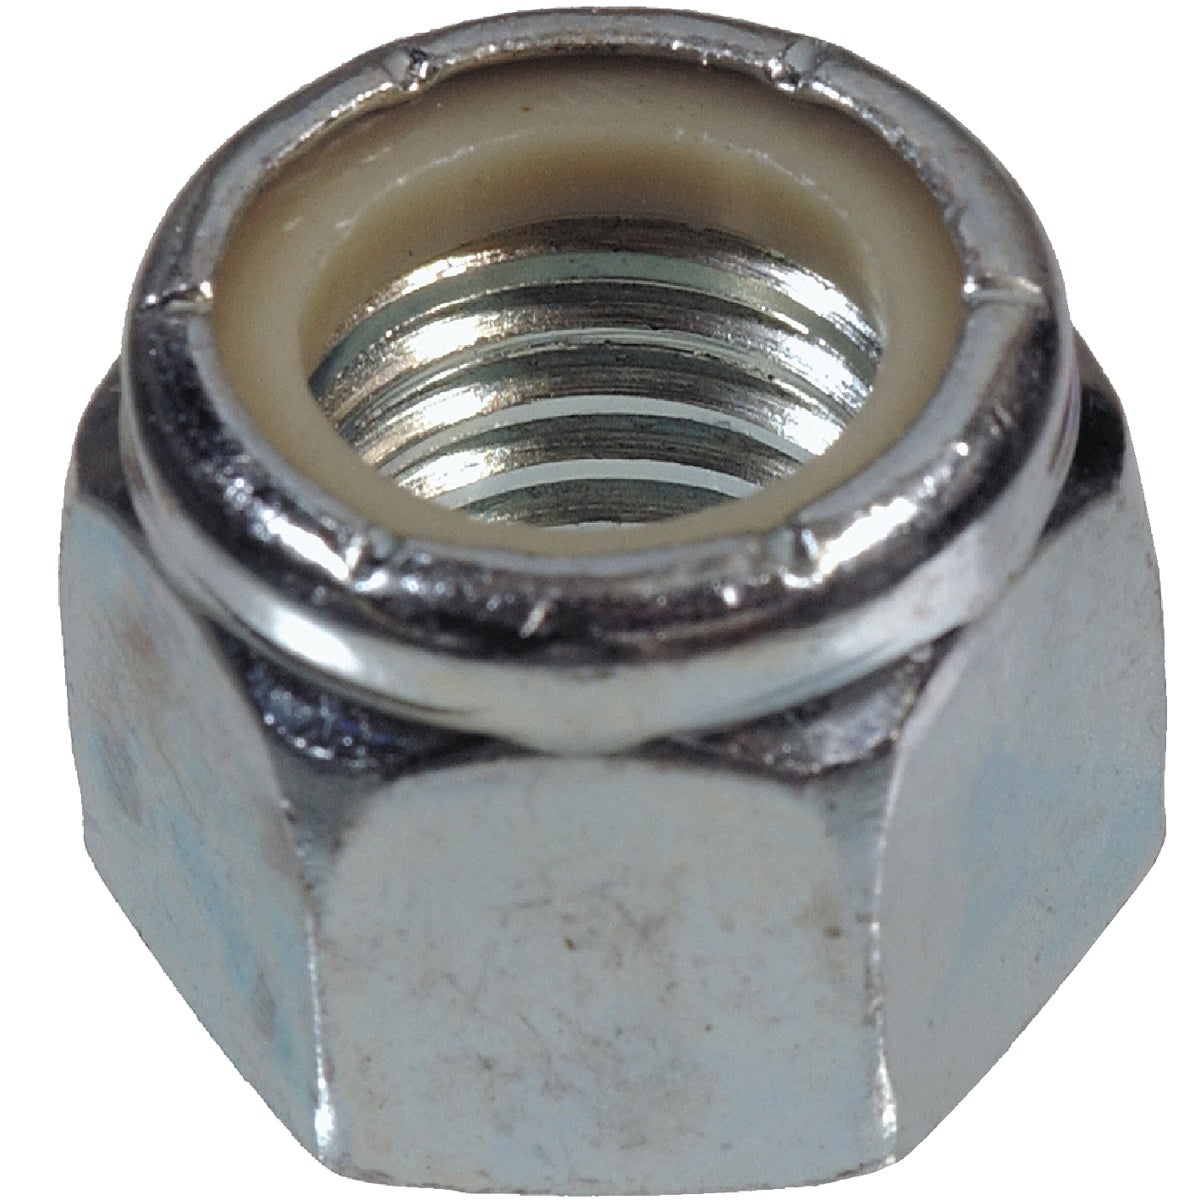 1/2-13 NYLON LOCK NUT - 180159 by Hillman Fastener